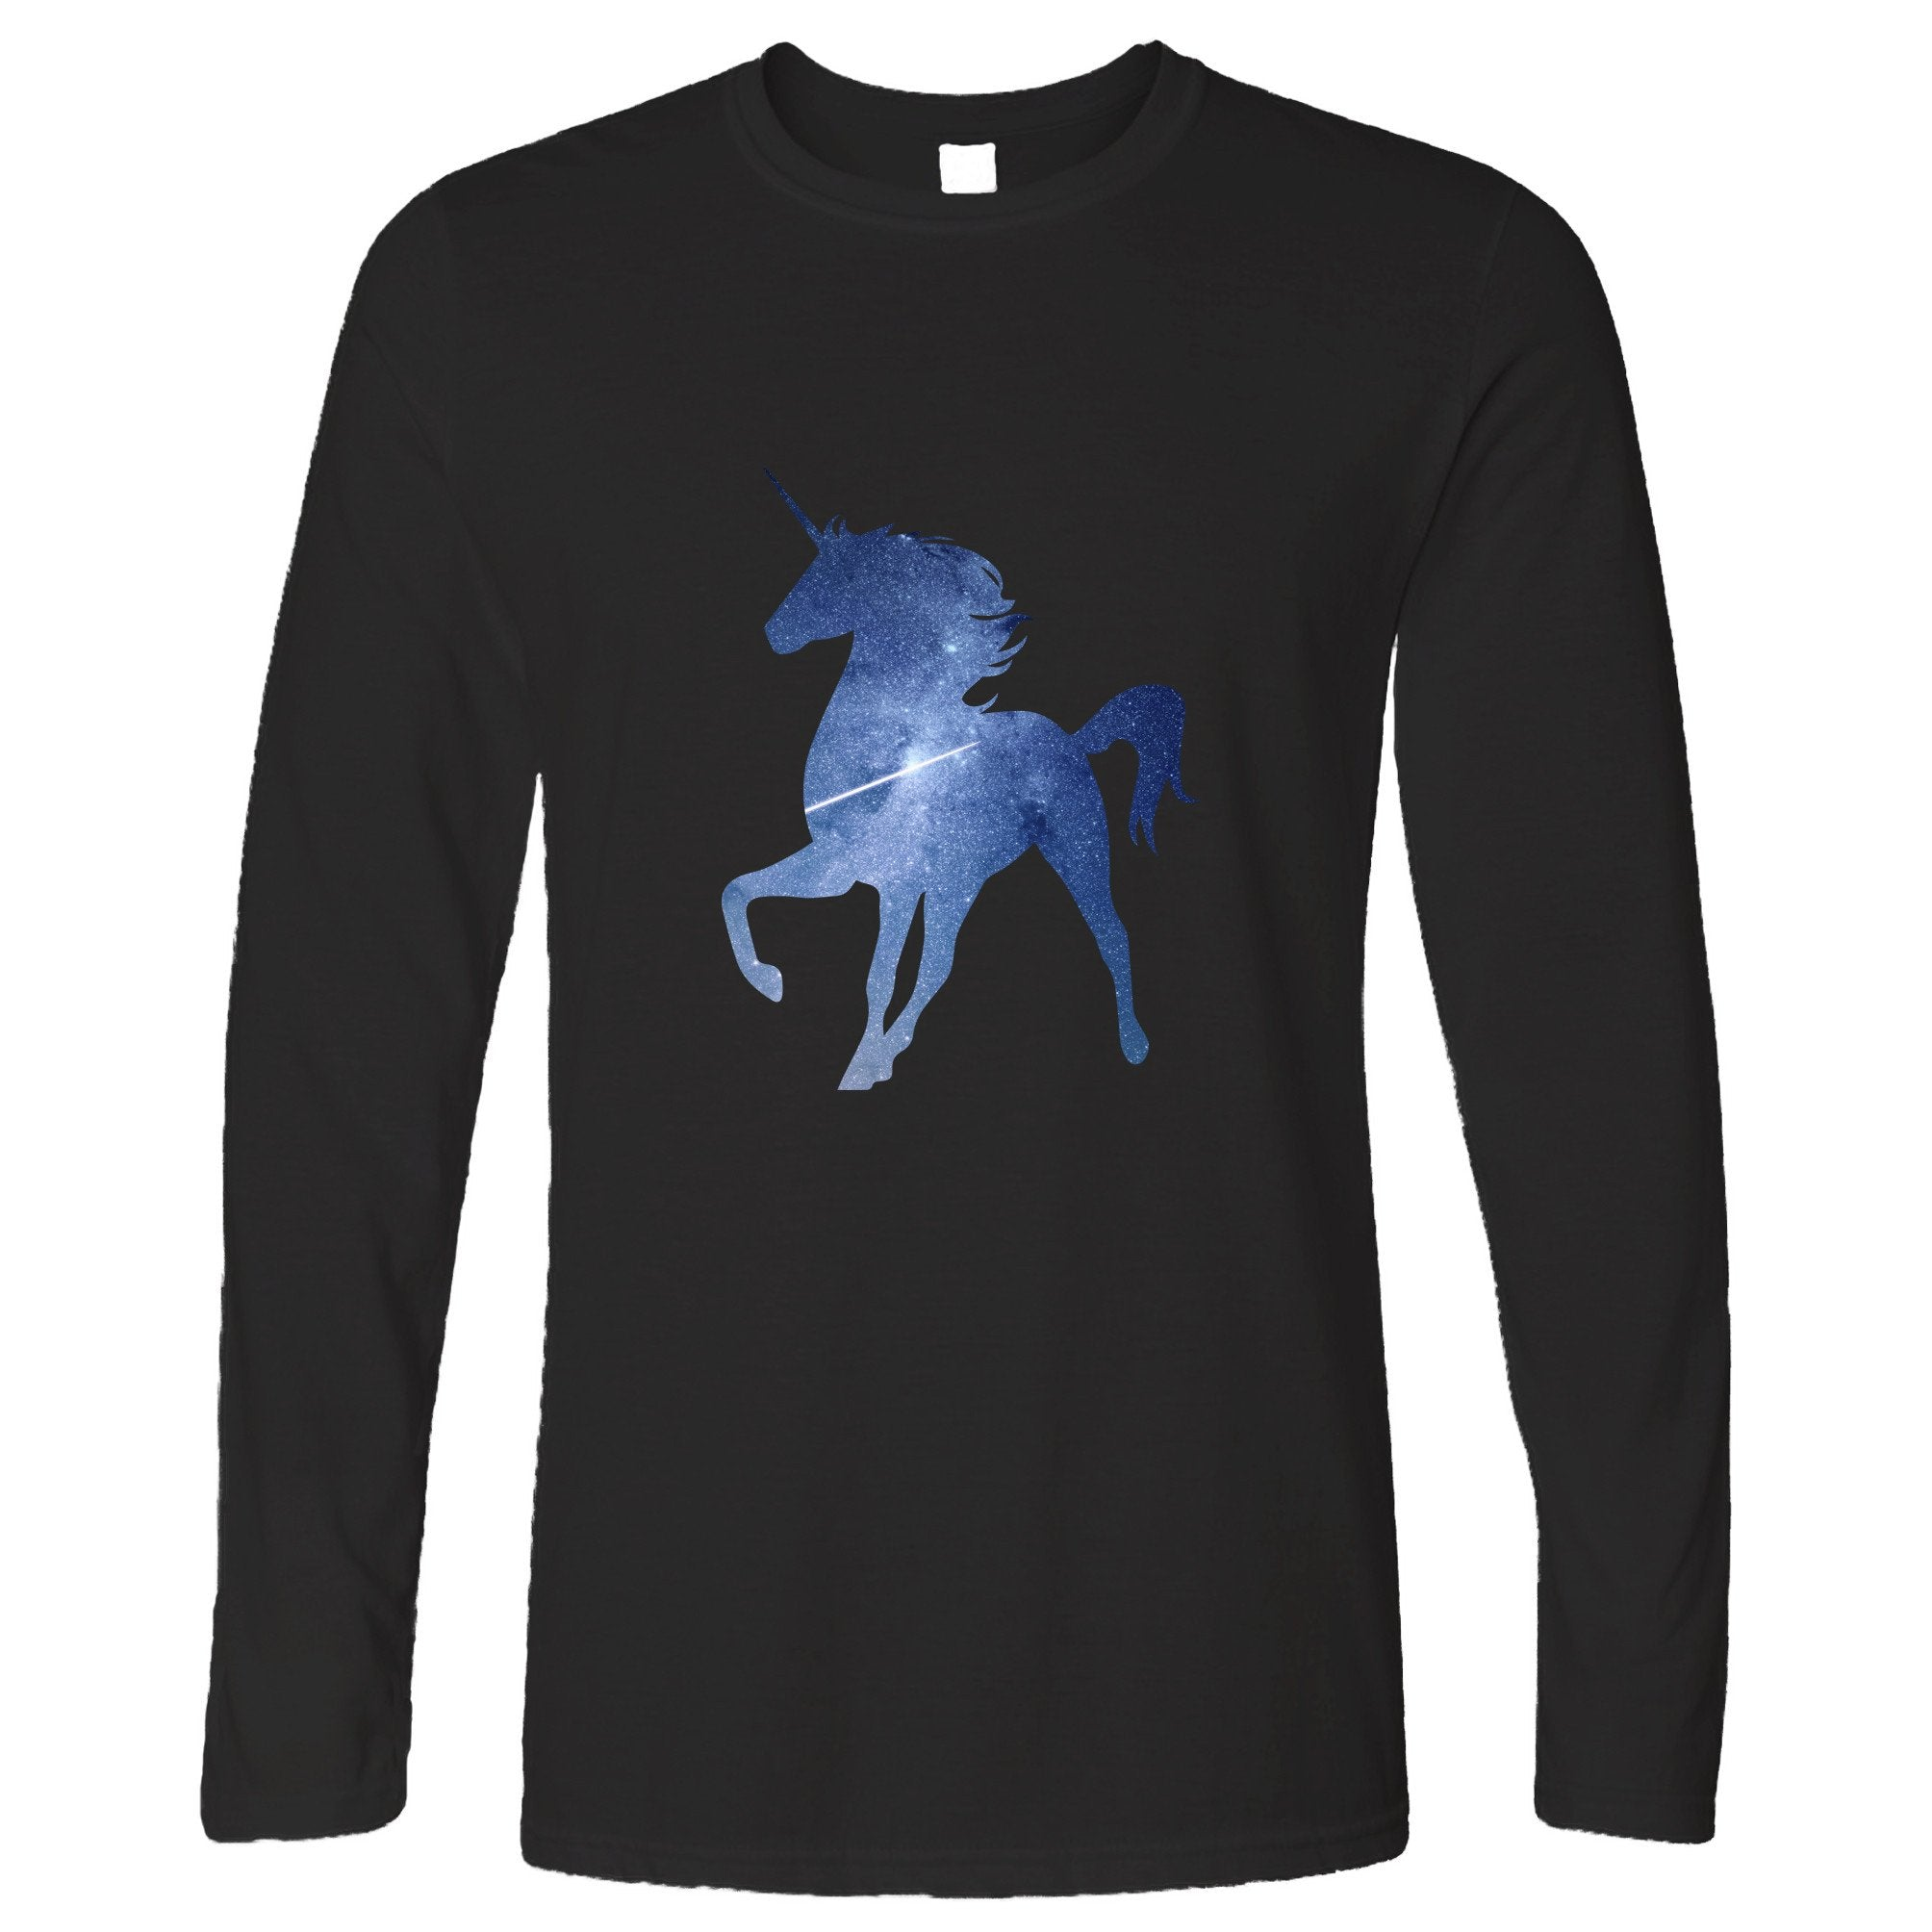 Mythical Space Long Sleeve Galaxy Unicorn Silhouette T-Shirt